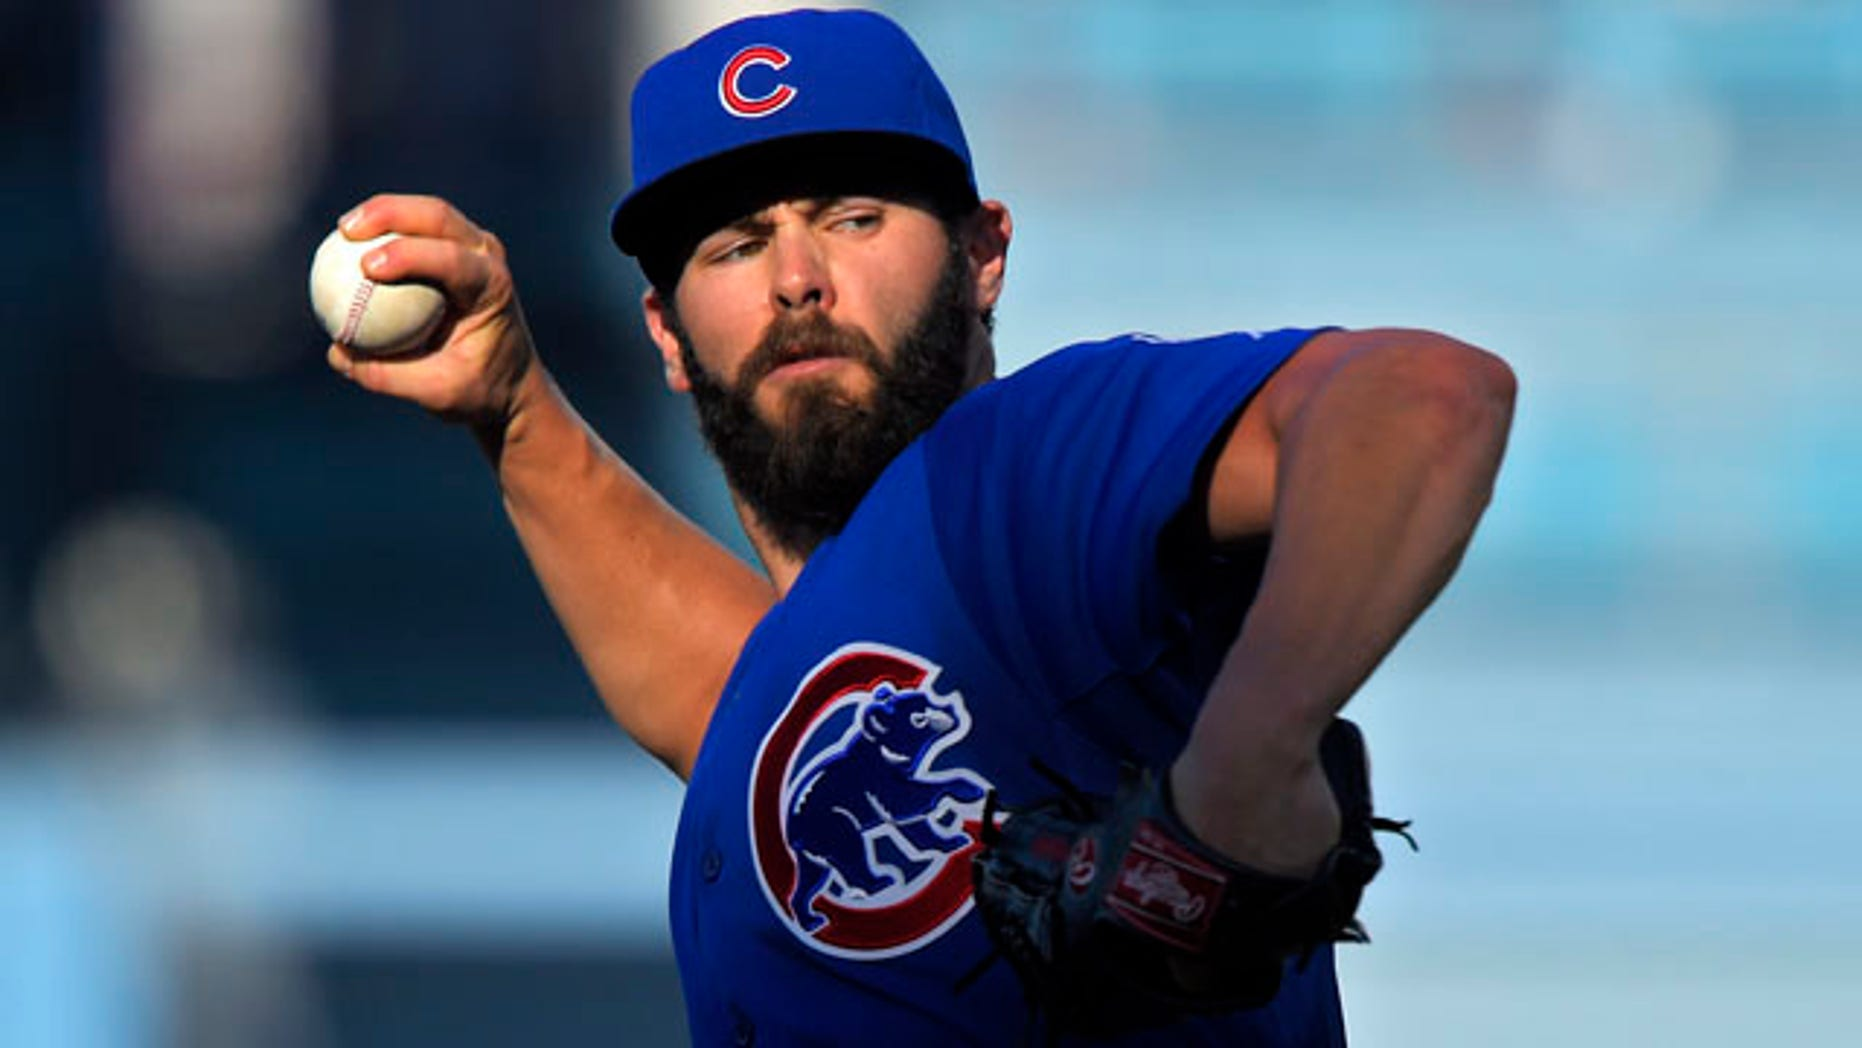 Aug. 30, 2015: Chicago Cubs starting pitcher Jake Arrieta throws to the plate during the first inning of a baseball game against the Los Angeles Dodgers. (AP Photo/Mark J. Terrill)